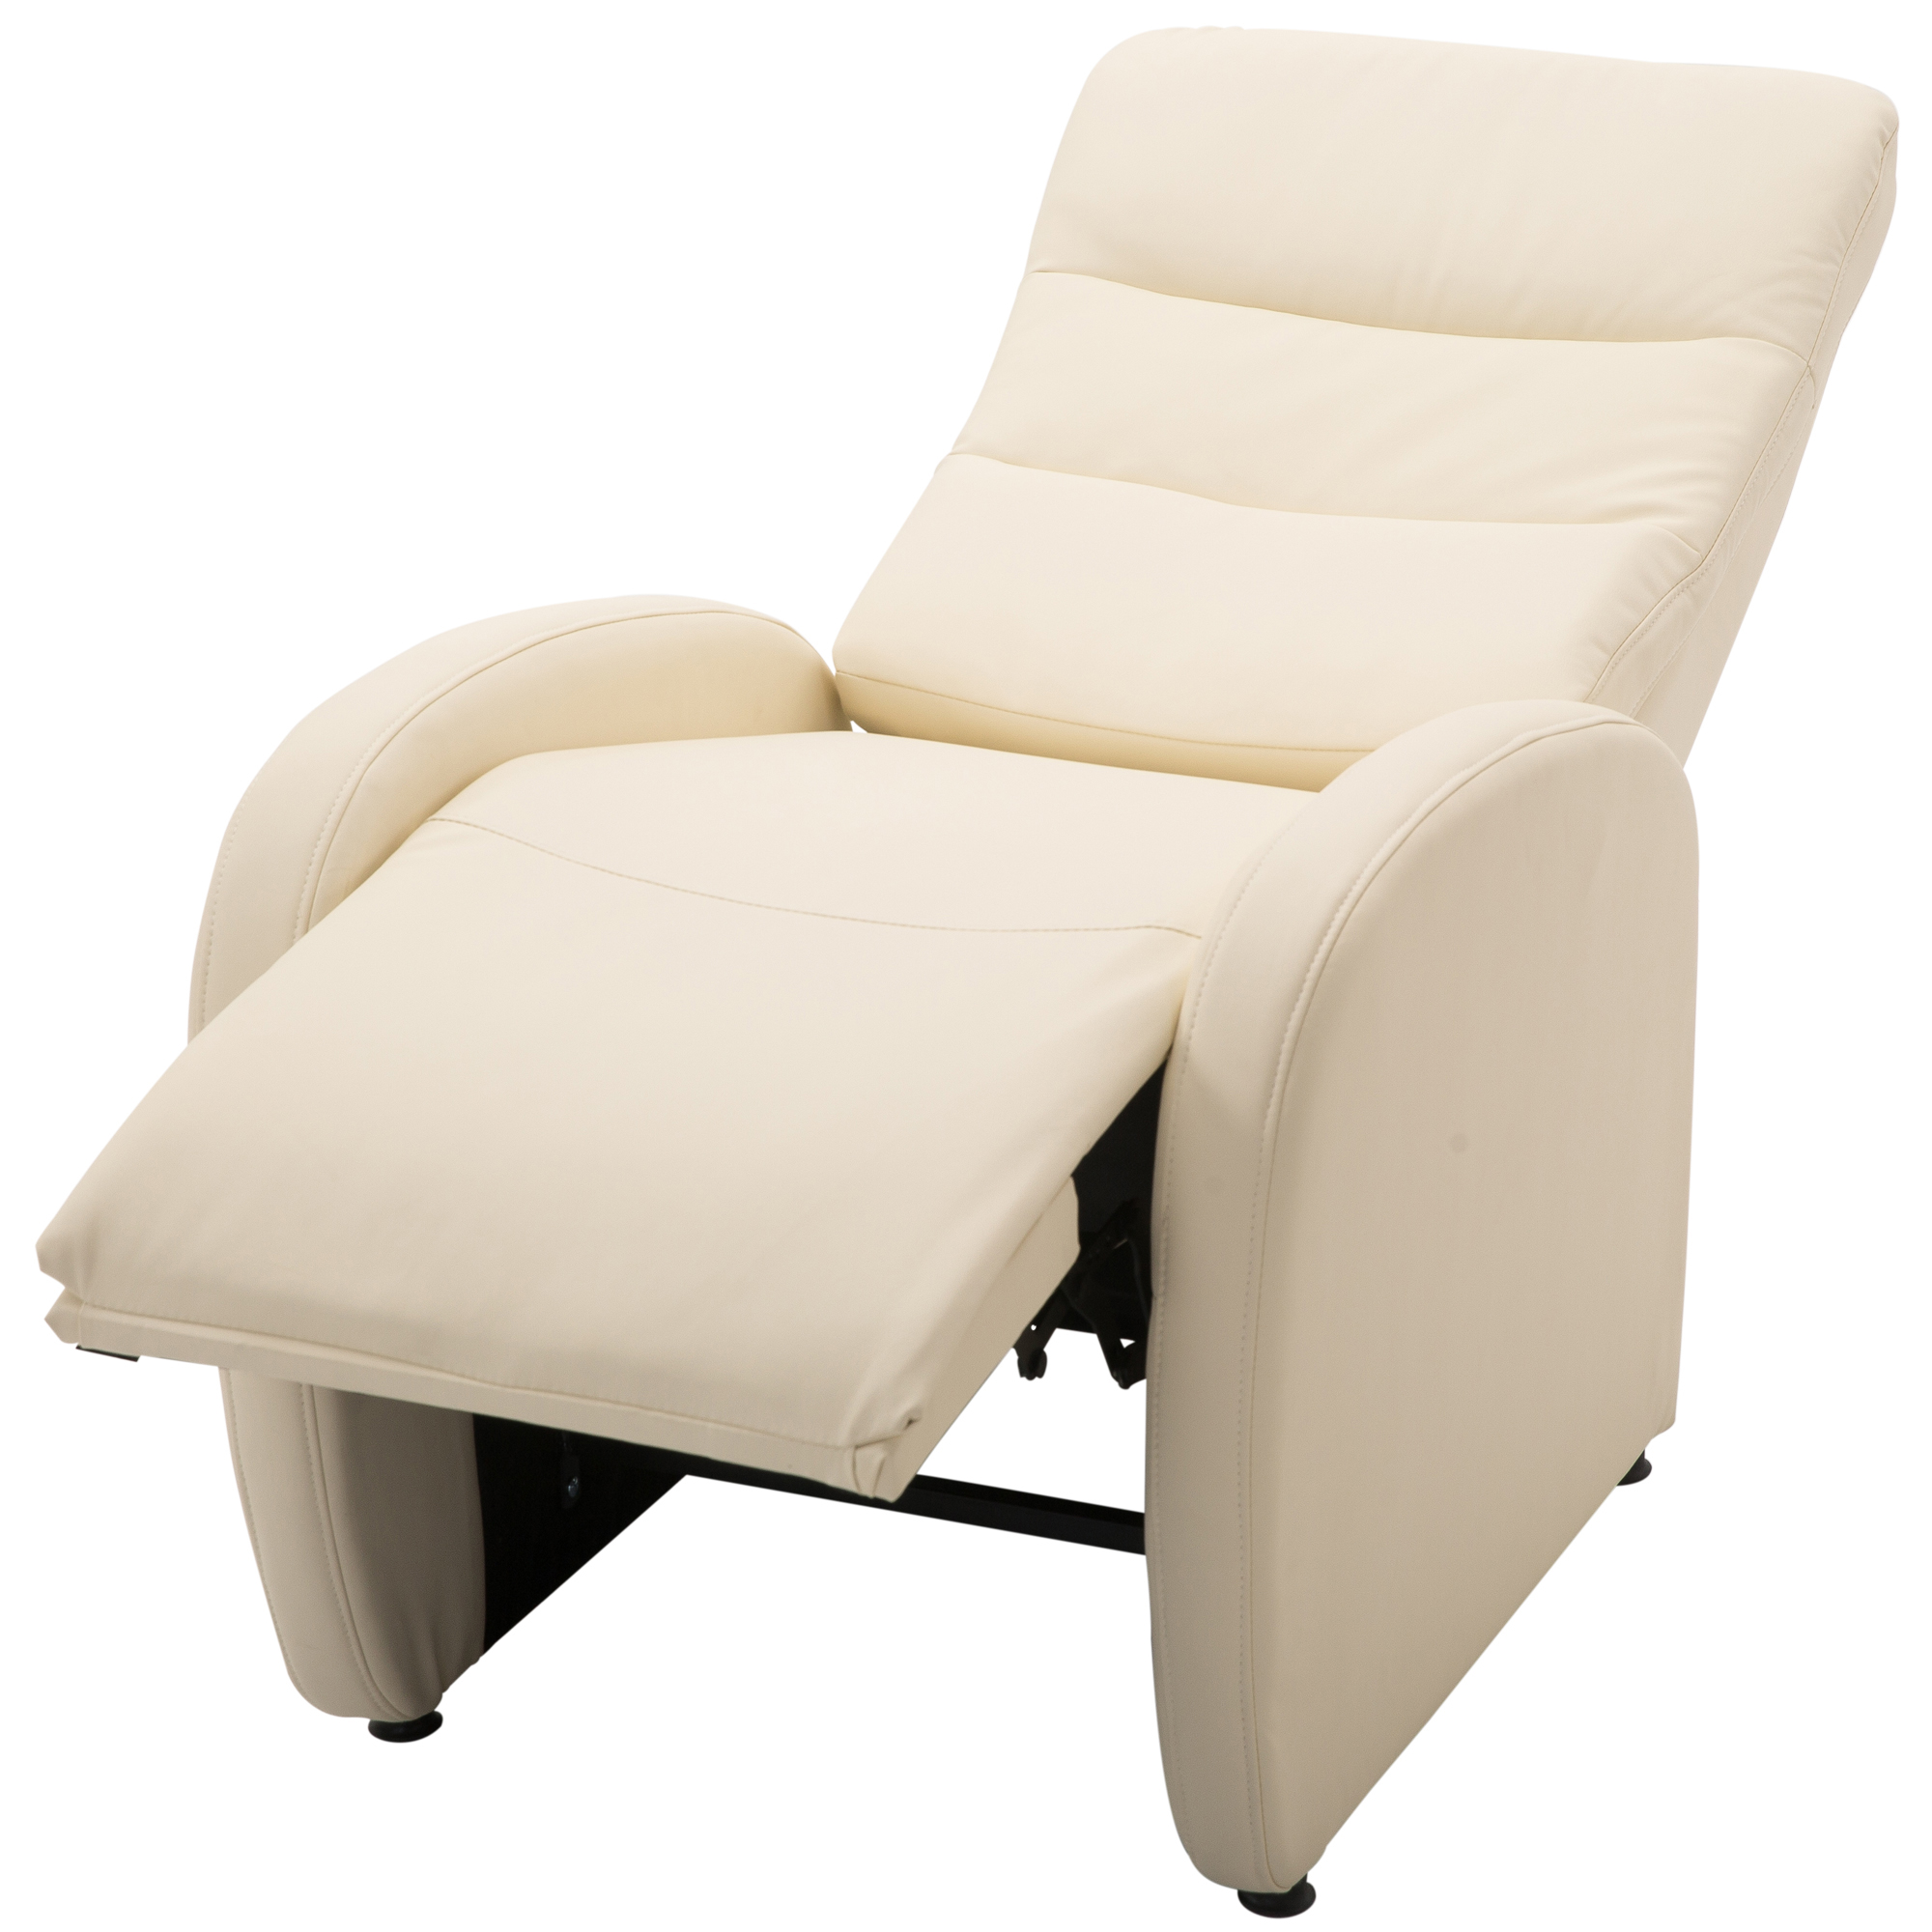 HOMCOM Relaxing Chair Recliner With Ottoman Modern Reach 120 Kg Imitation 67 × 89 × 110 Cm Cream